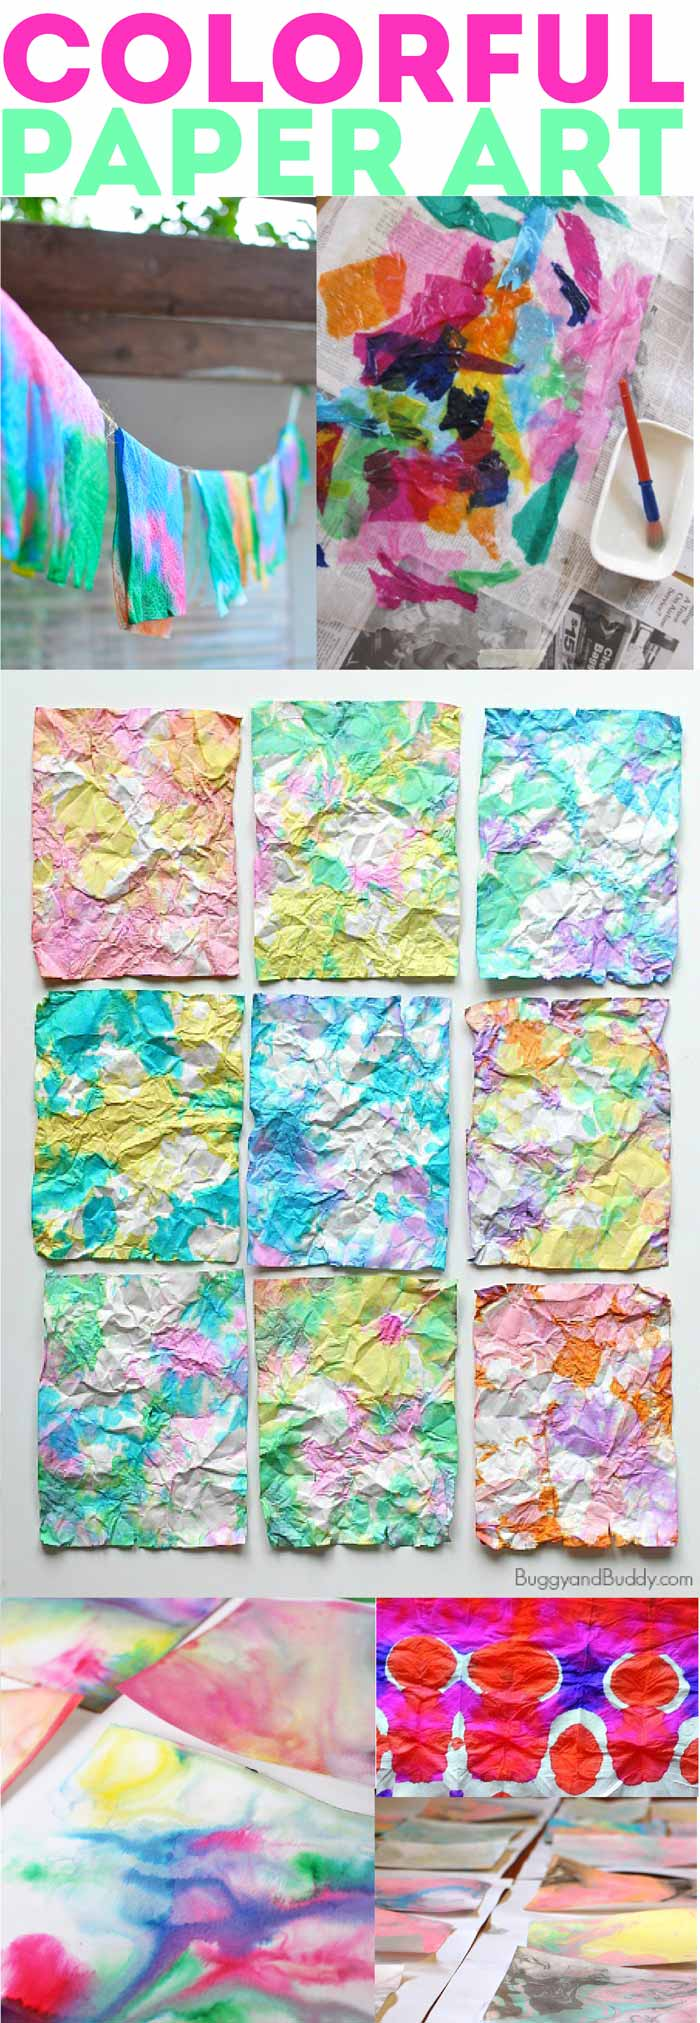 60+ amazing paper crafts for kids (and adults) to make! Colorful Paper Art Ideas!